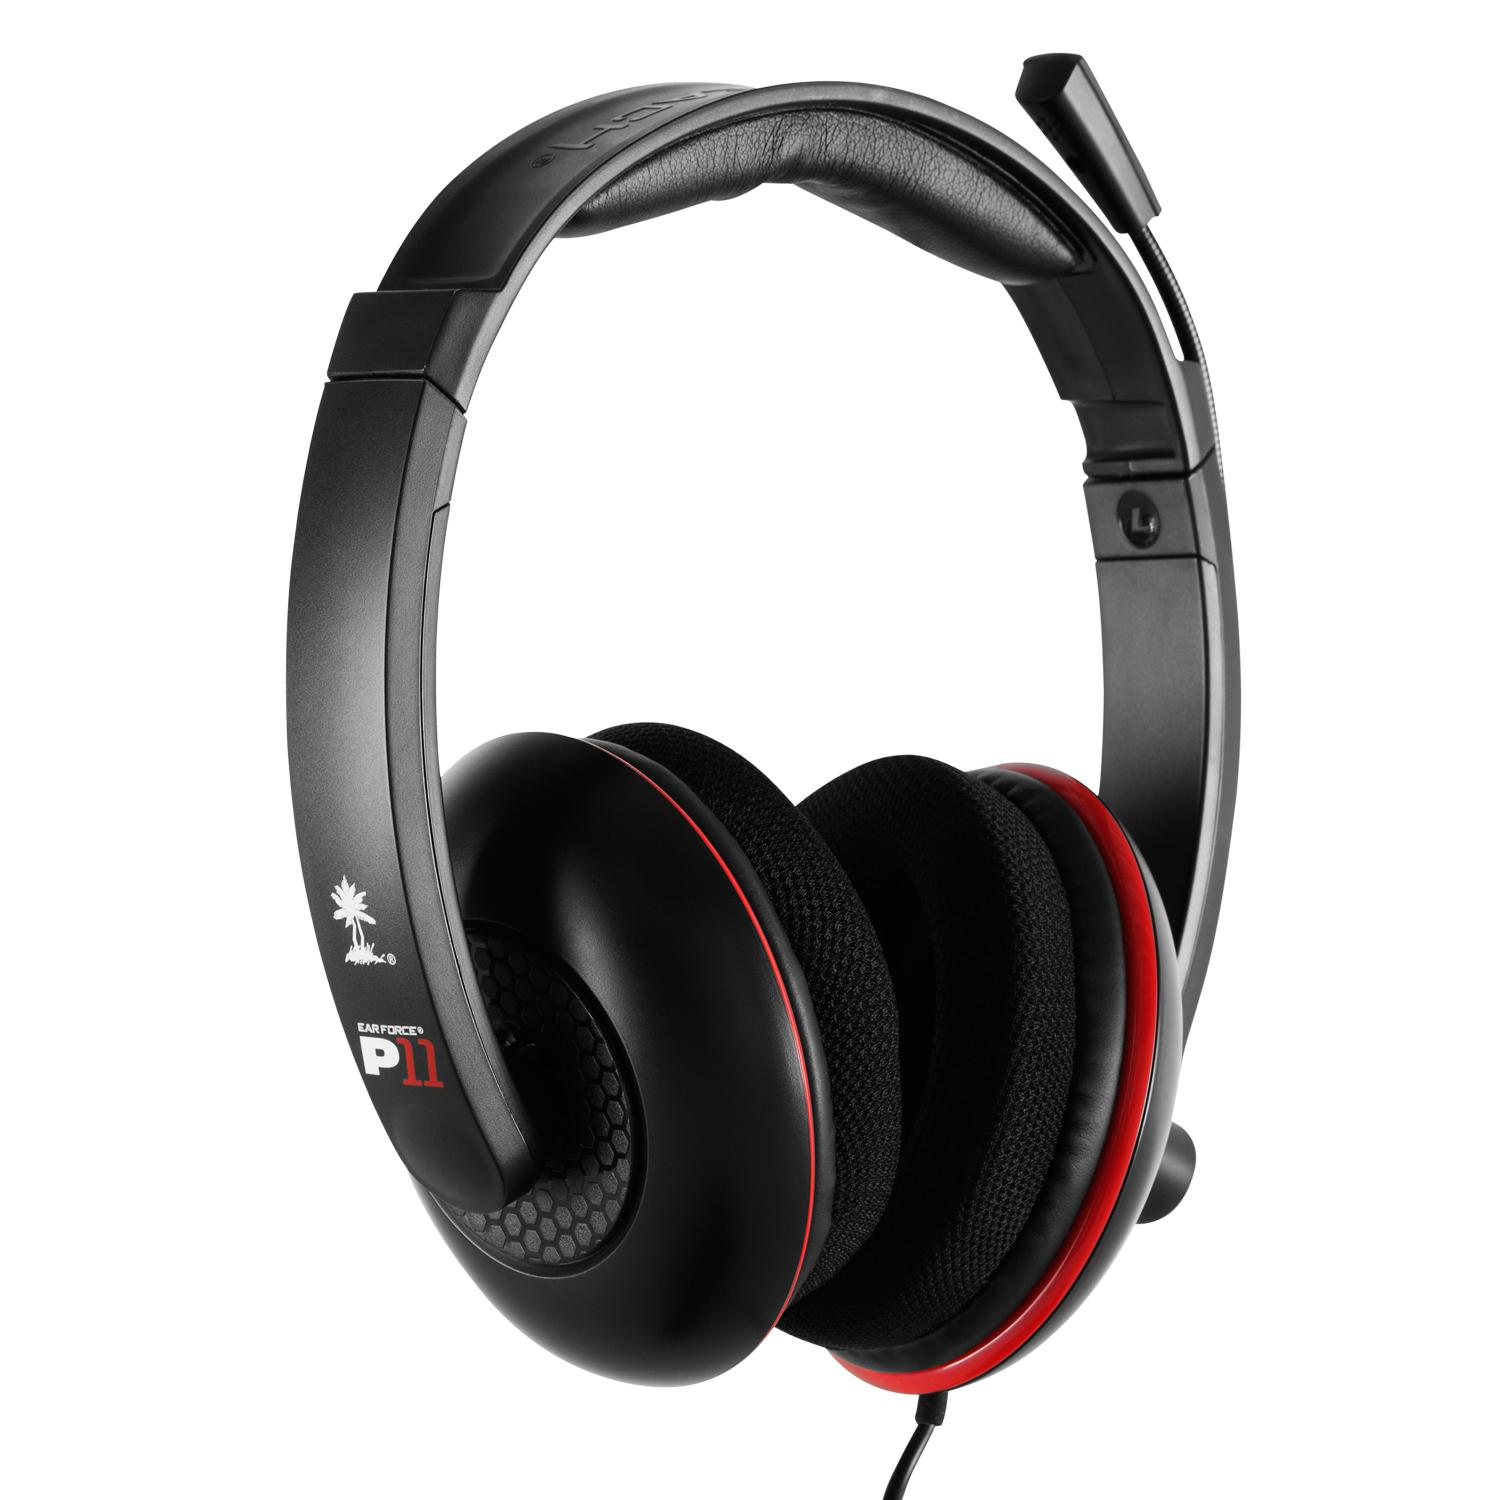 78029df0671 How to connect turtle beach headphones to ps3